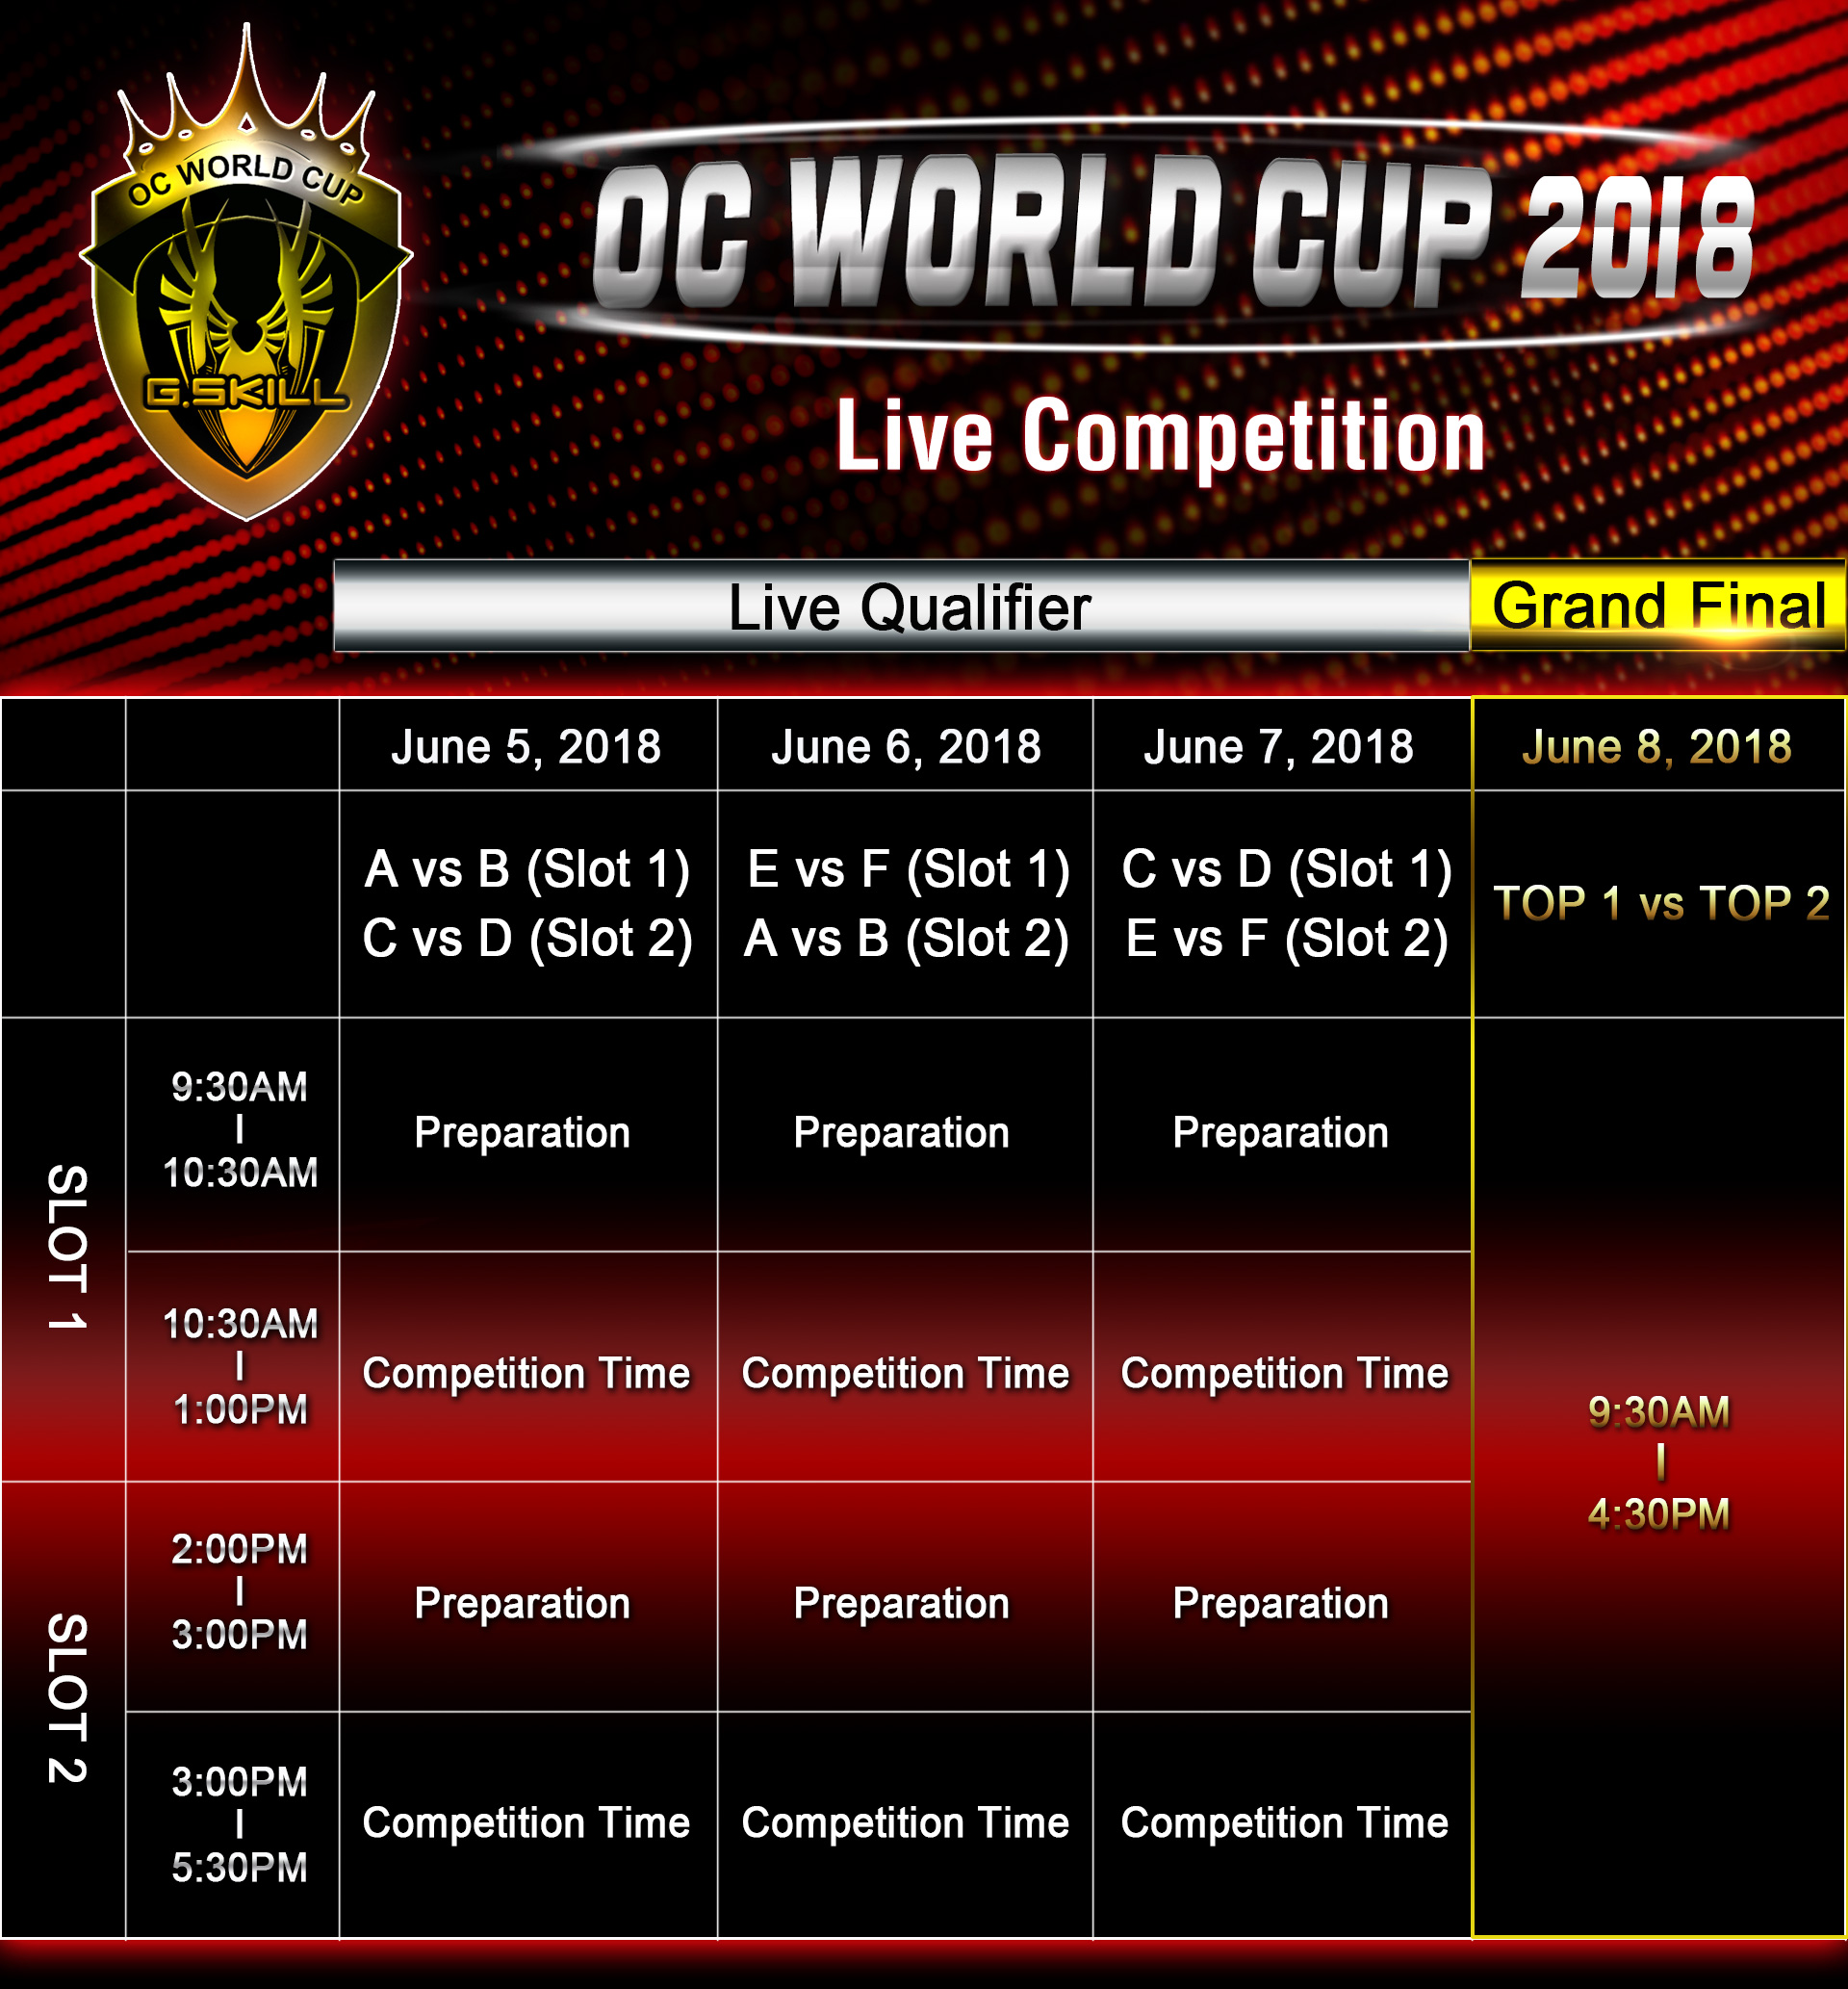 http://gskill.com/en/press/view/g-skill-announces-oc-world-cup-2018-live-qualifier-and-grand-final-rules